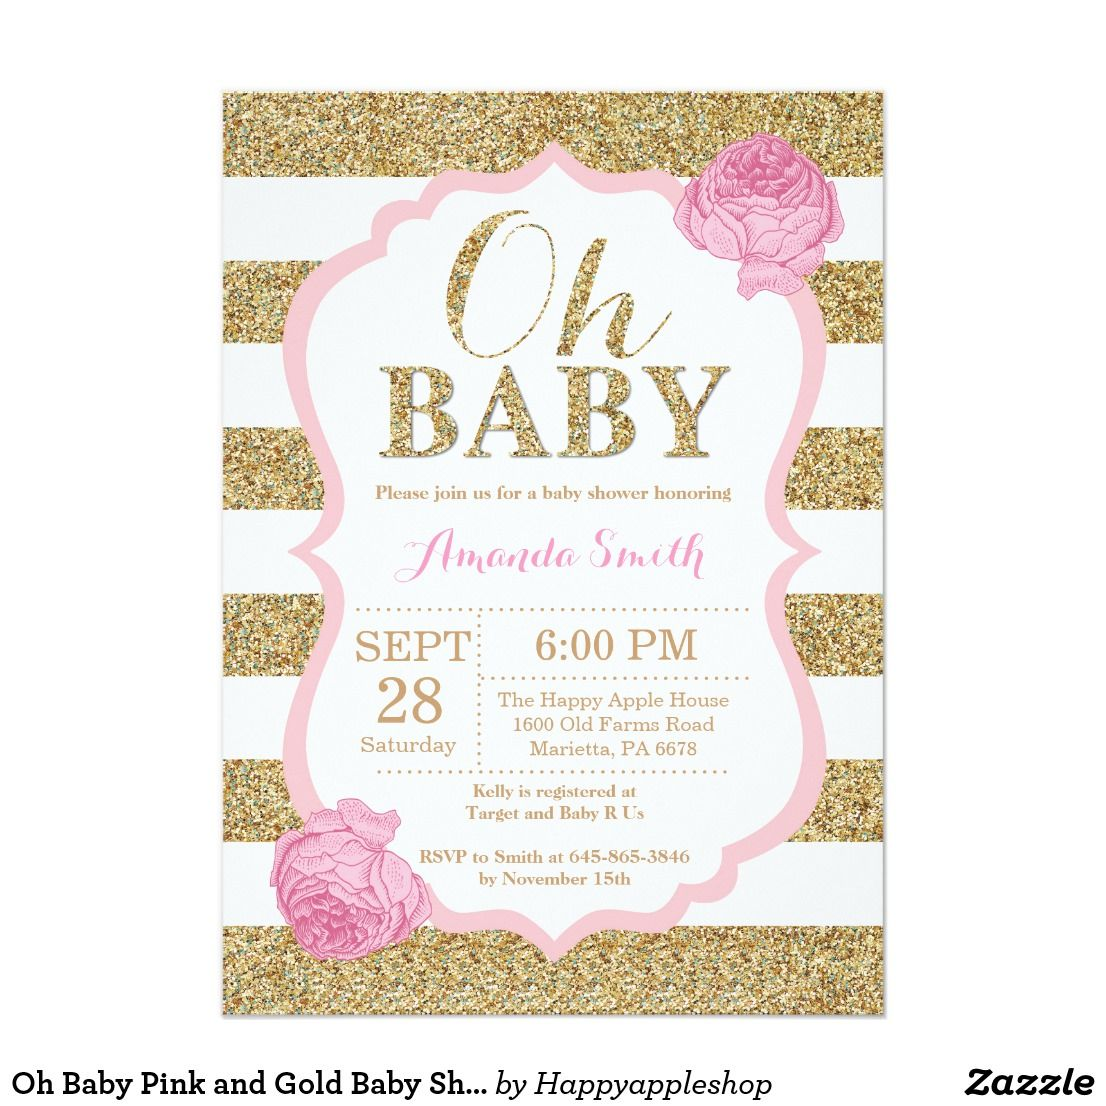 Oh Baby Pink and Gold Baby Shower Invitation | Custom Floral Faux Glitter Baby  Shower Invite from Zazzle |